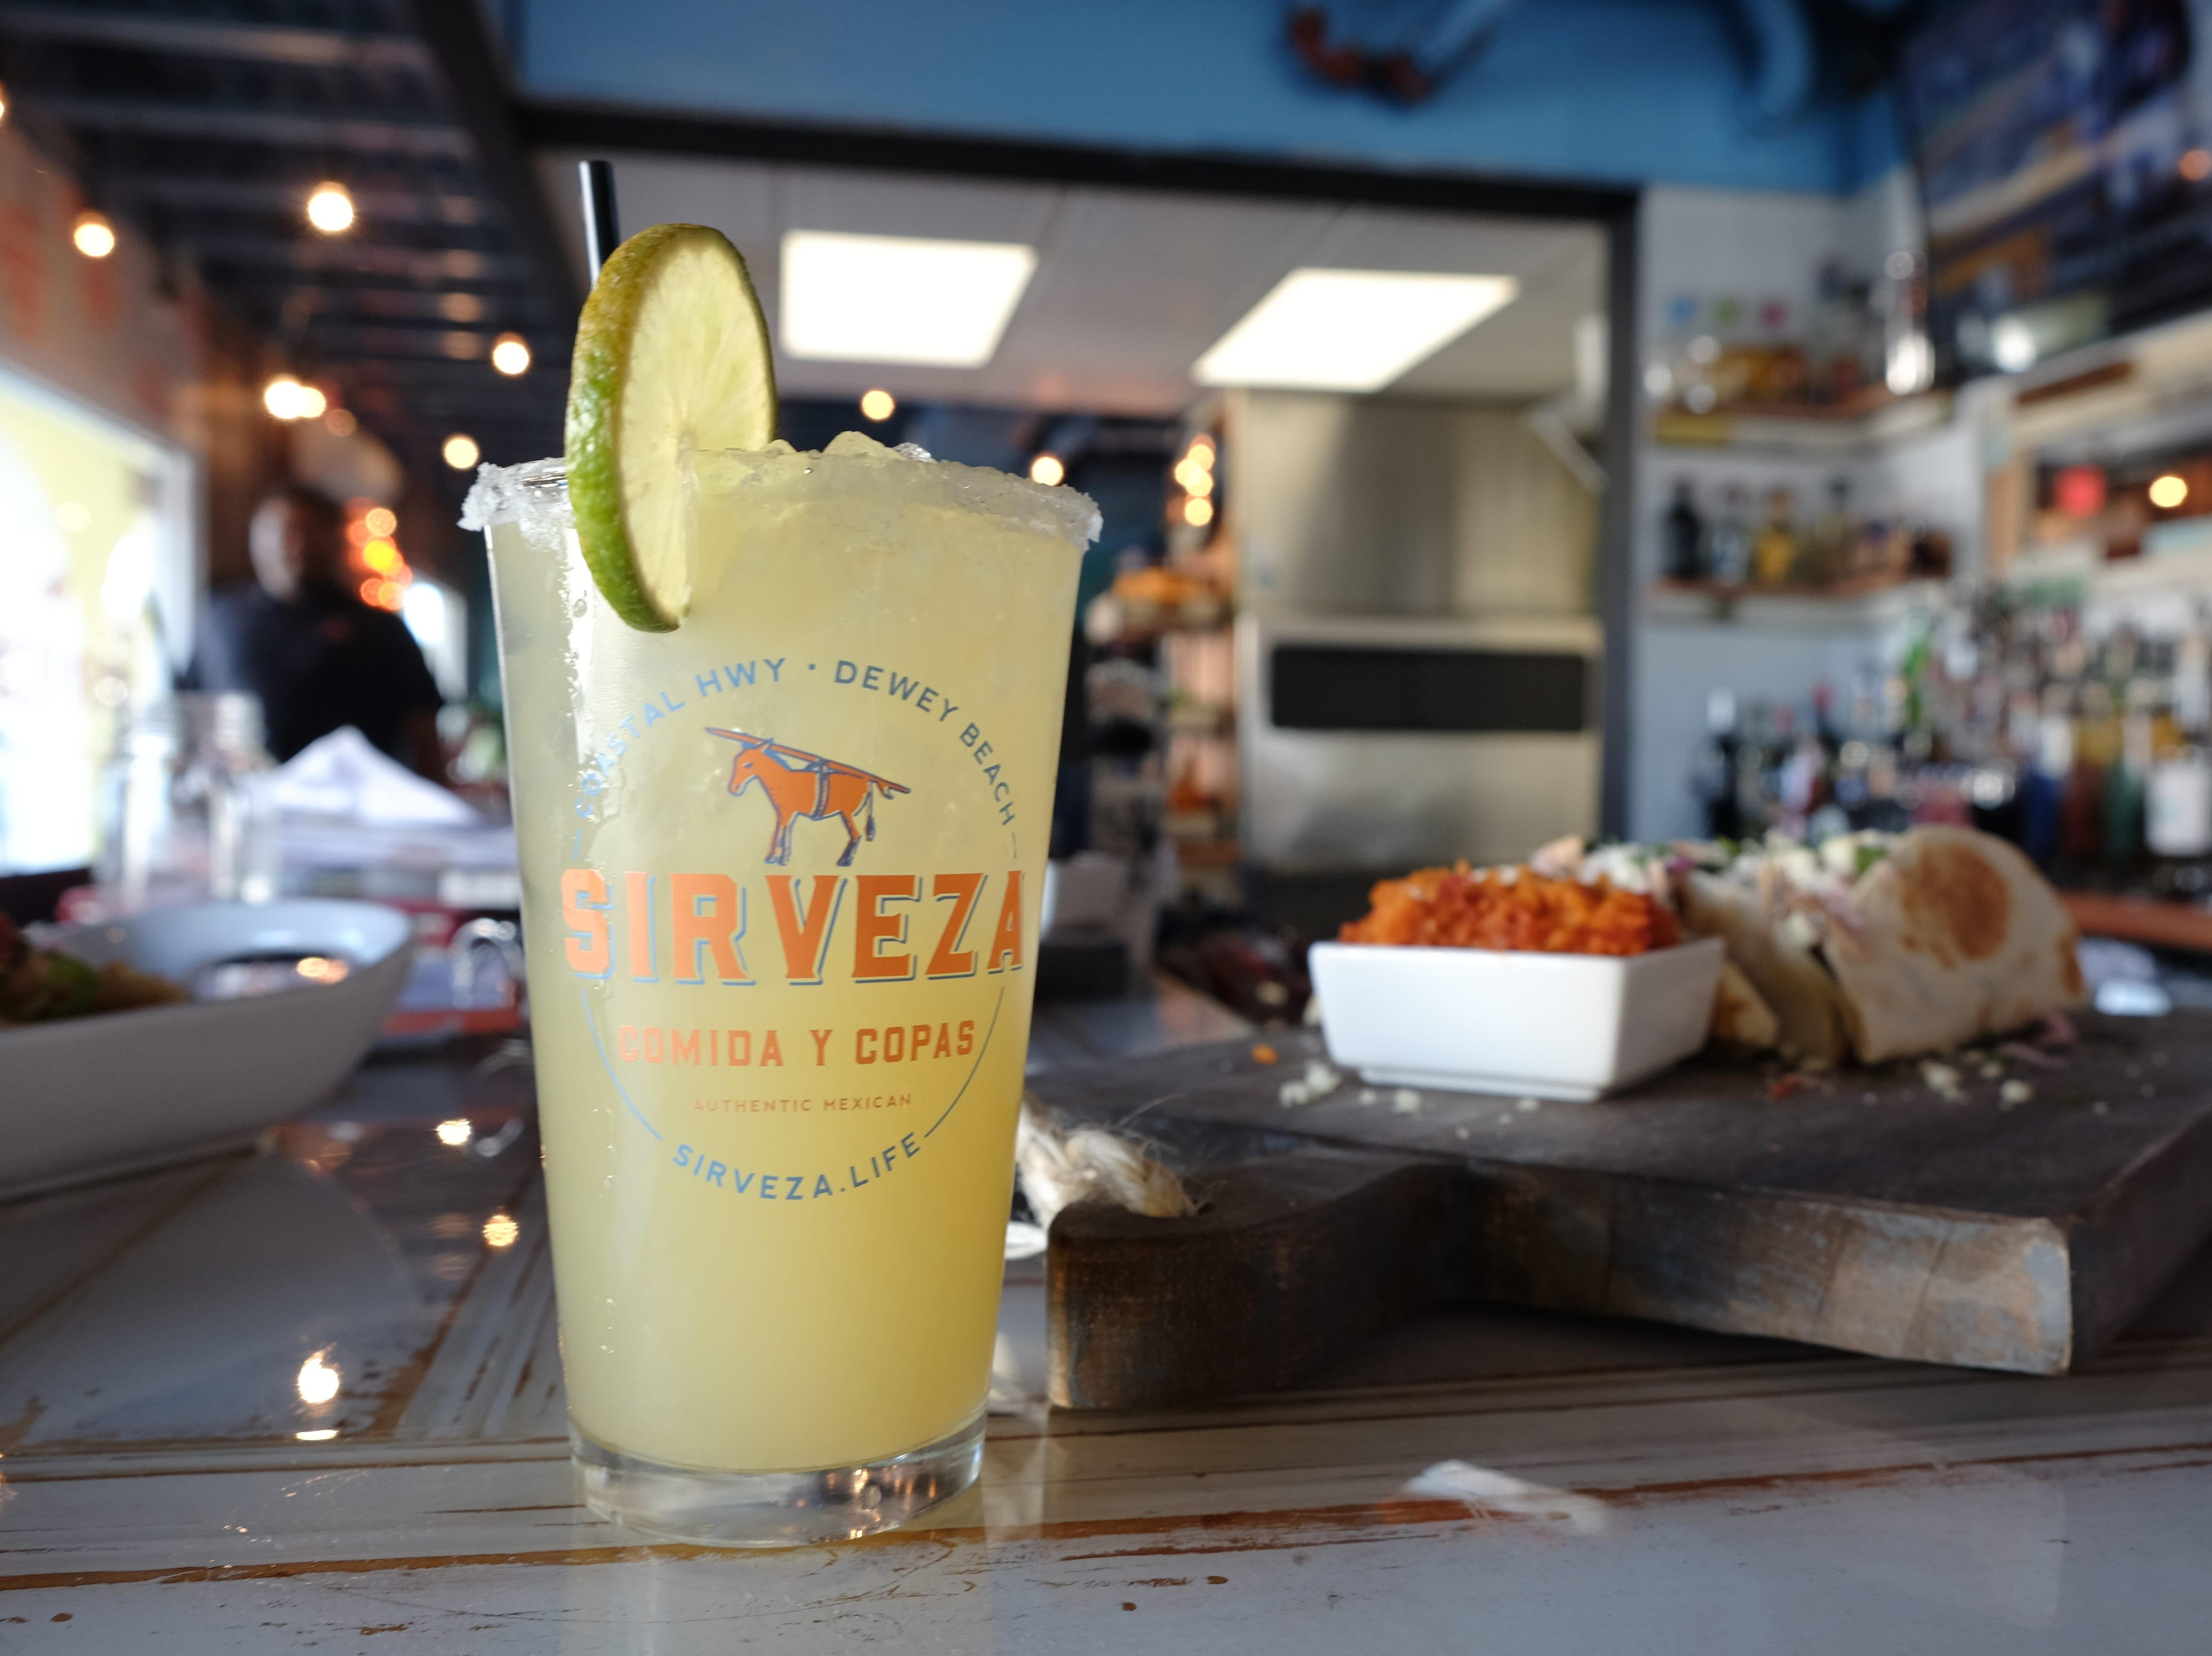 Sirveza, a new Mexican restaurant in Dewey Beach, is known for its margaritas.